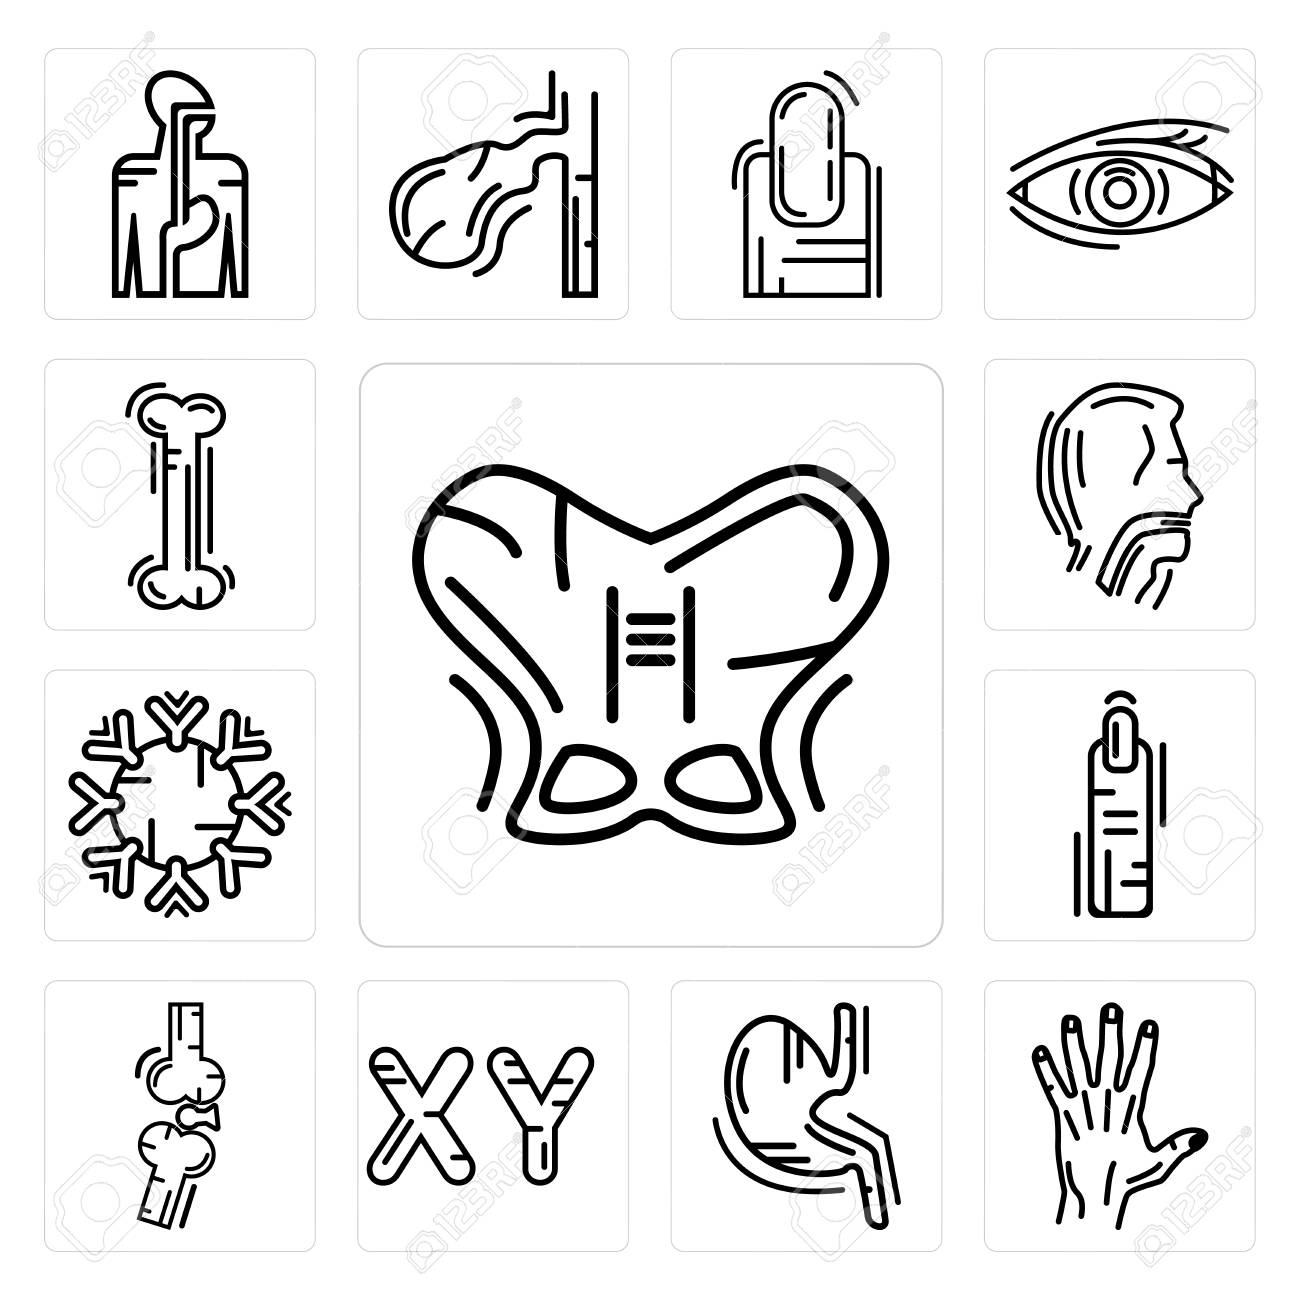 Chromosome Set Set Of 13 Simple Editable Icons Such As Human Hip Men Hand